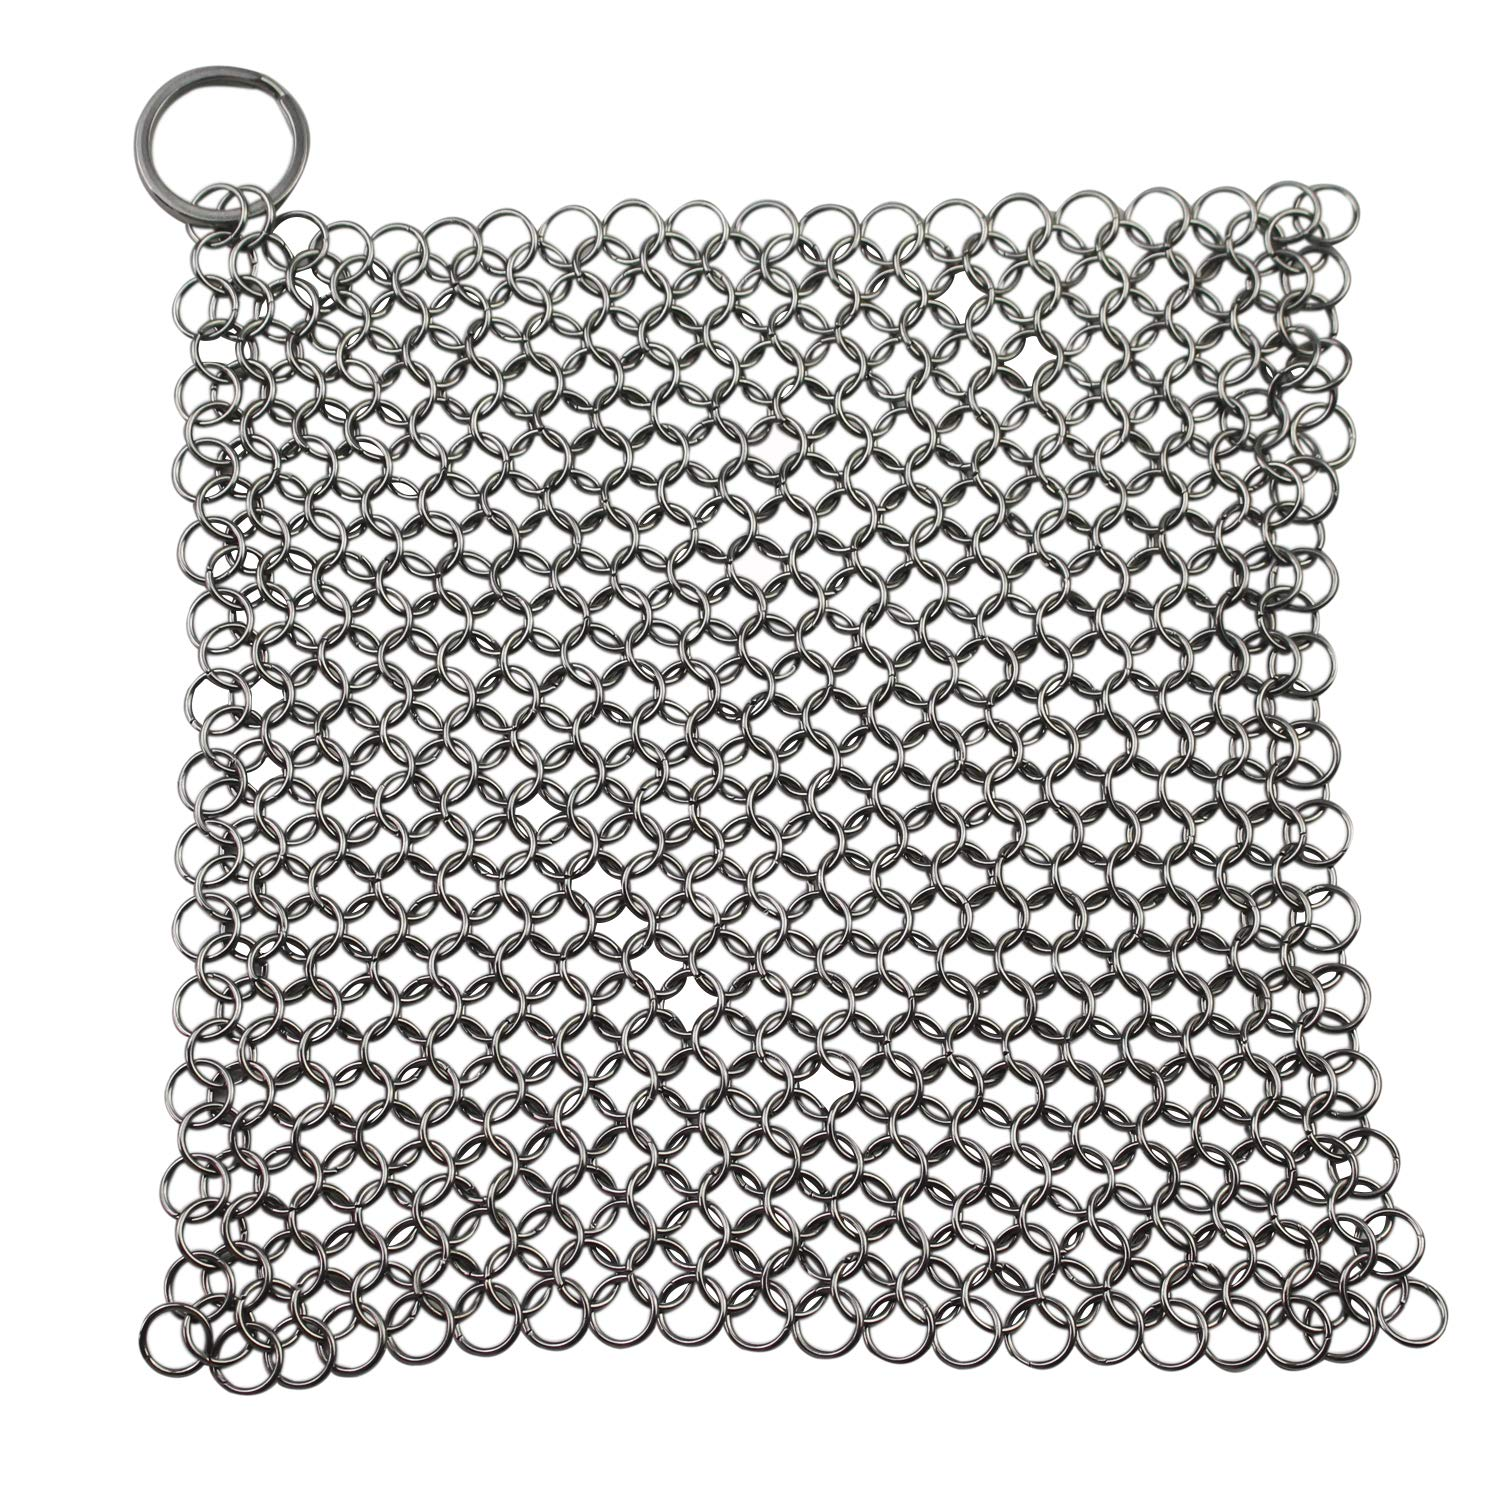 WeiMeet Cast Iron Cleaner 316L Stainless Steel Cast Iron Scrubber Cleaning Mesh for Cast Iron Pan Dutch Ovens Waffle Iron Pans Skillet Stainless Steel Cookware